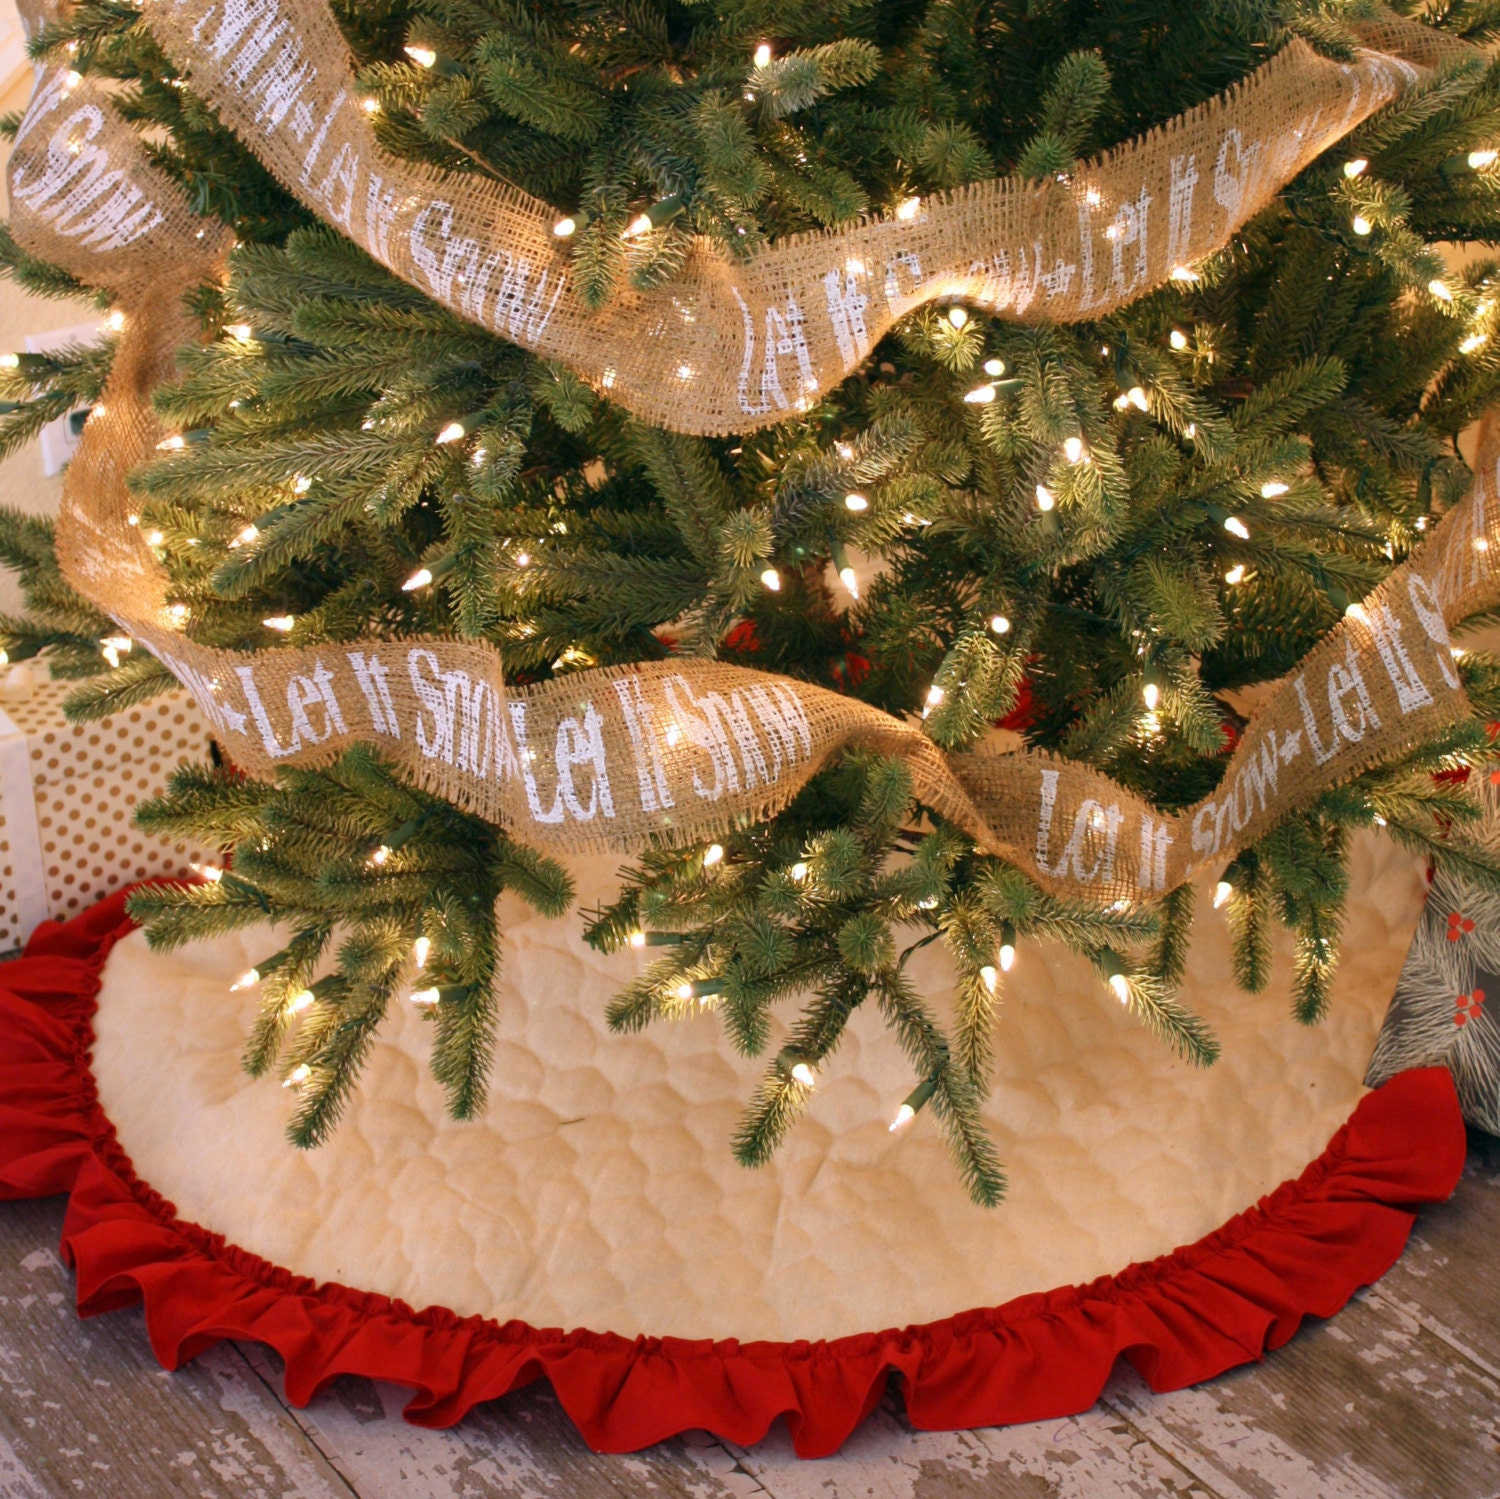 Quilted Christmas Tree Skirt with Hemmed Ruffle Fringe 42 : quilted christmas tree skirt kits - Adamdwight.com